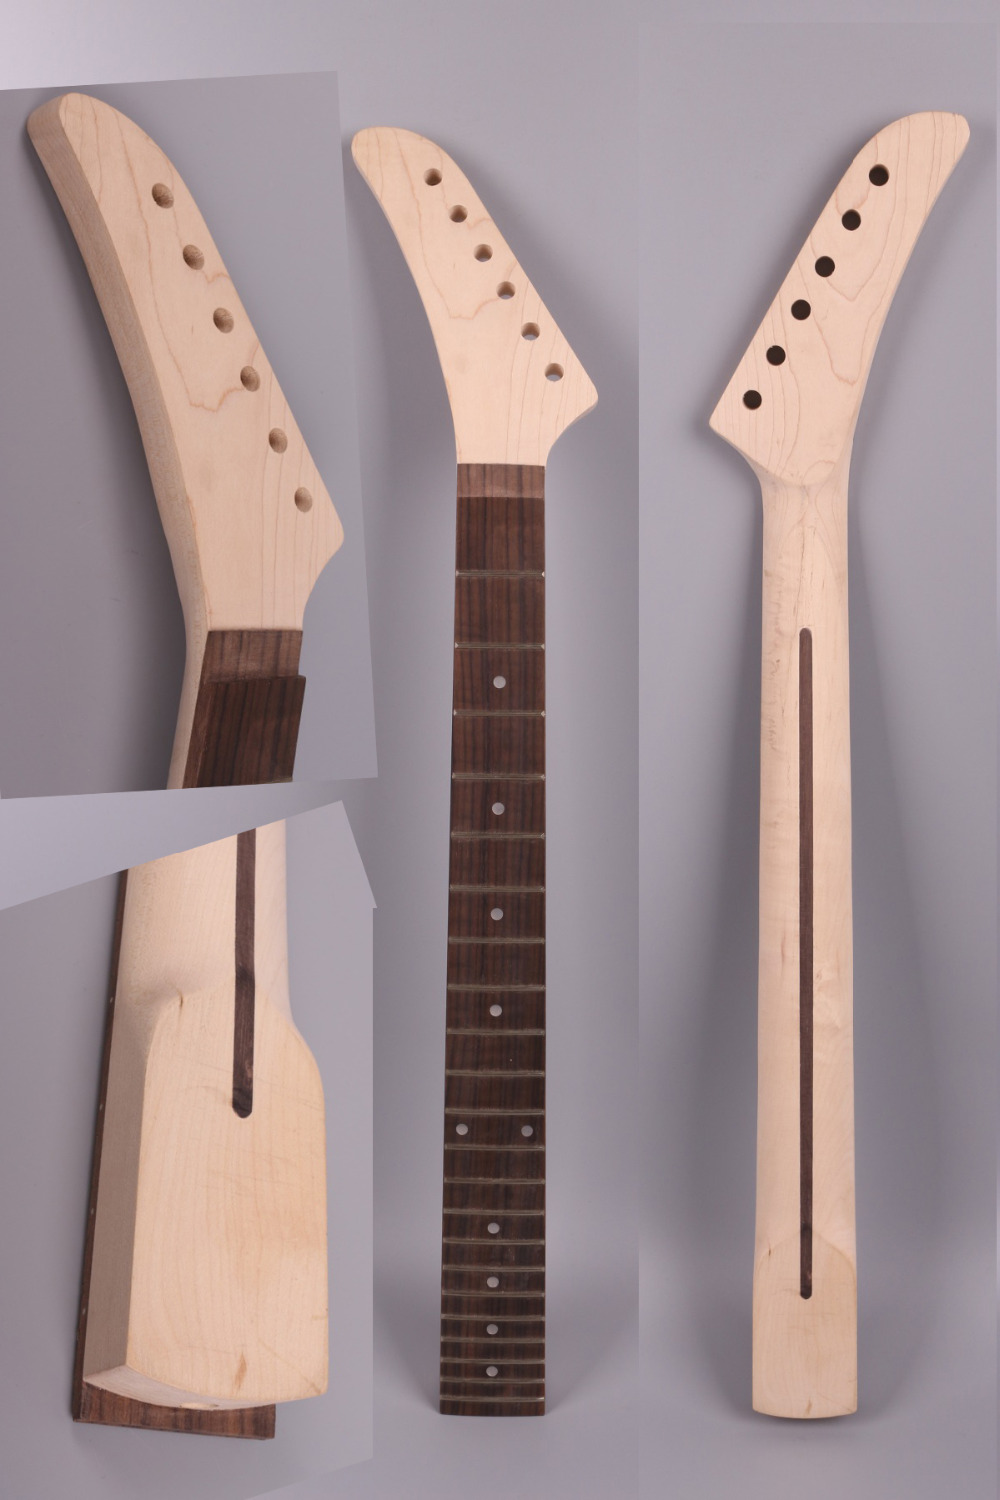 electric guitar neck 25.5 inch 22 fret maple banana headstock rosewood fingerboard Left hand цена